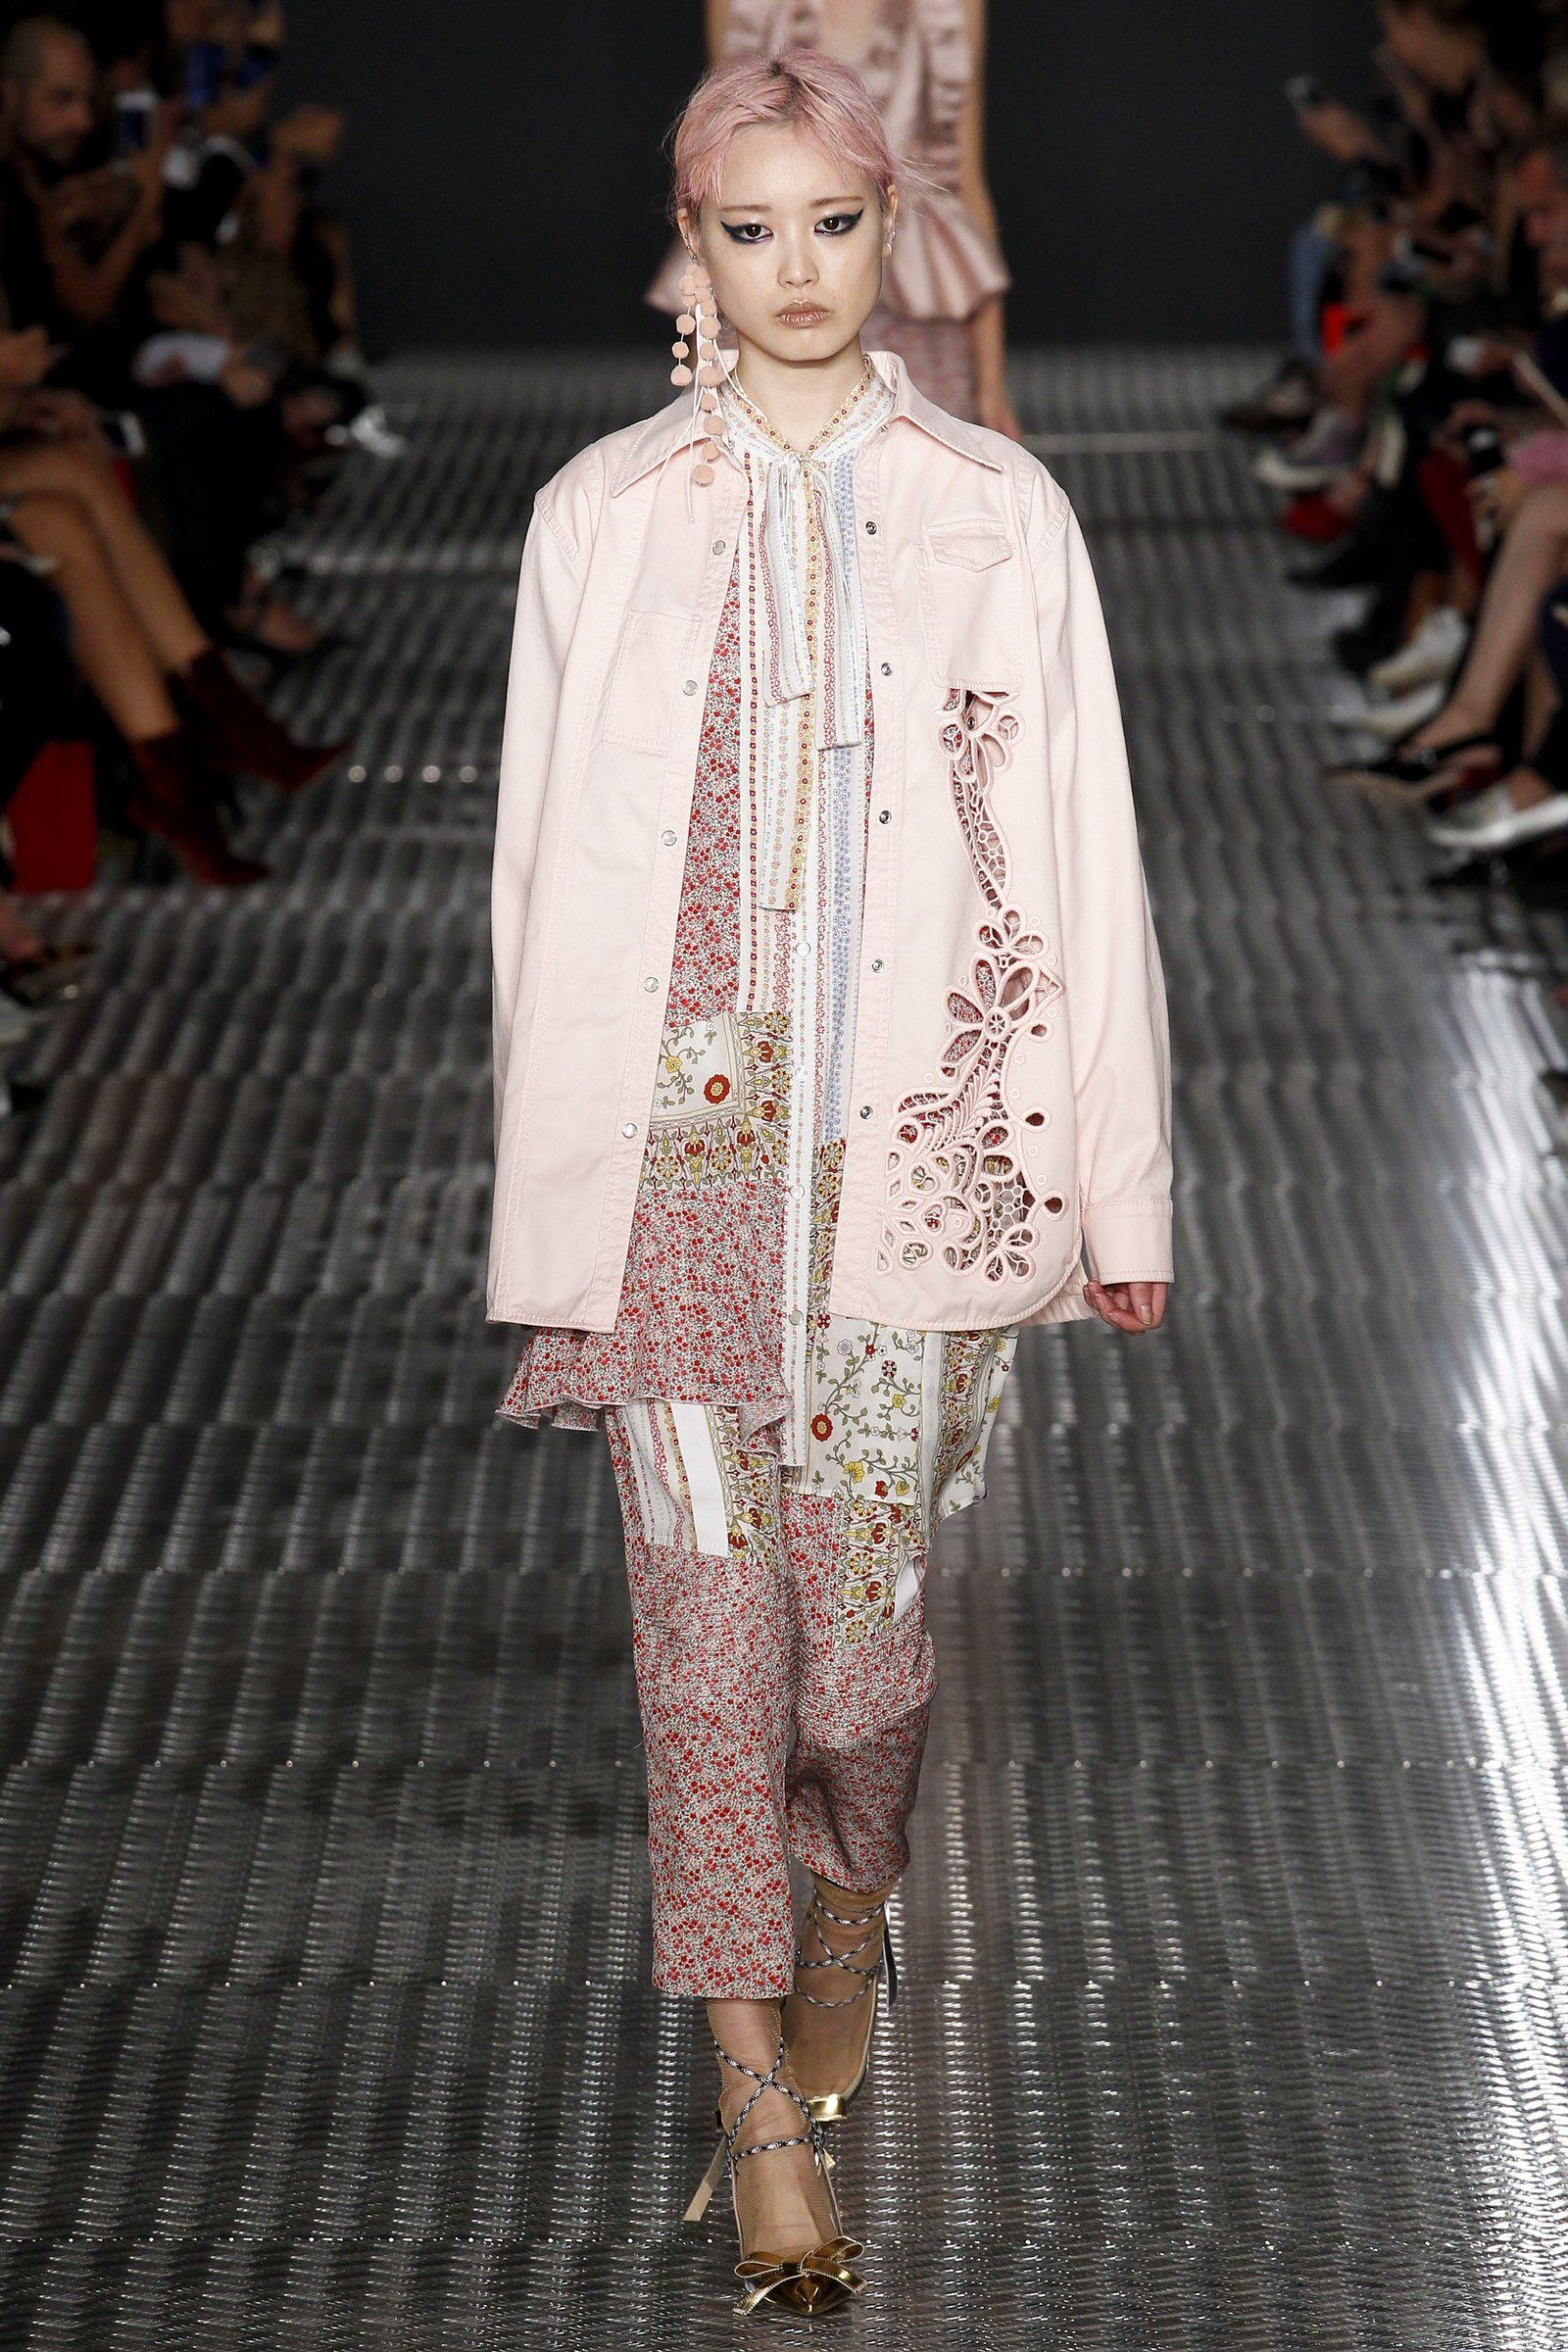 aecb2cf36 The Head-Turning Hair Moment in Milan That Has Us Thinking Pink ...